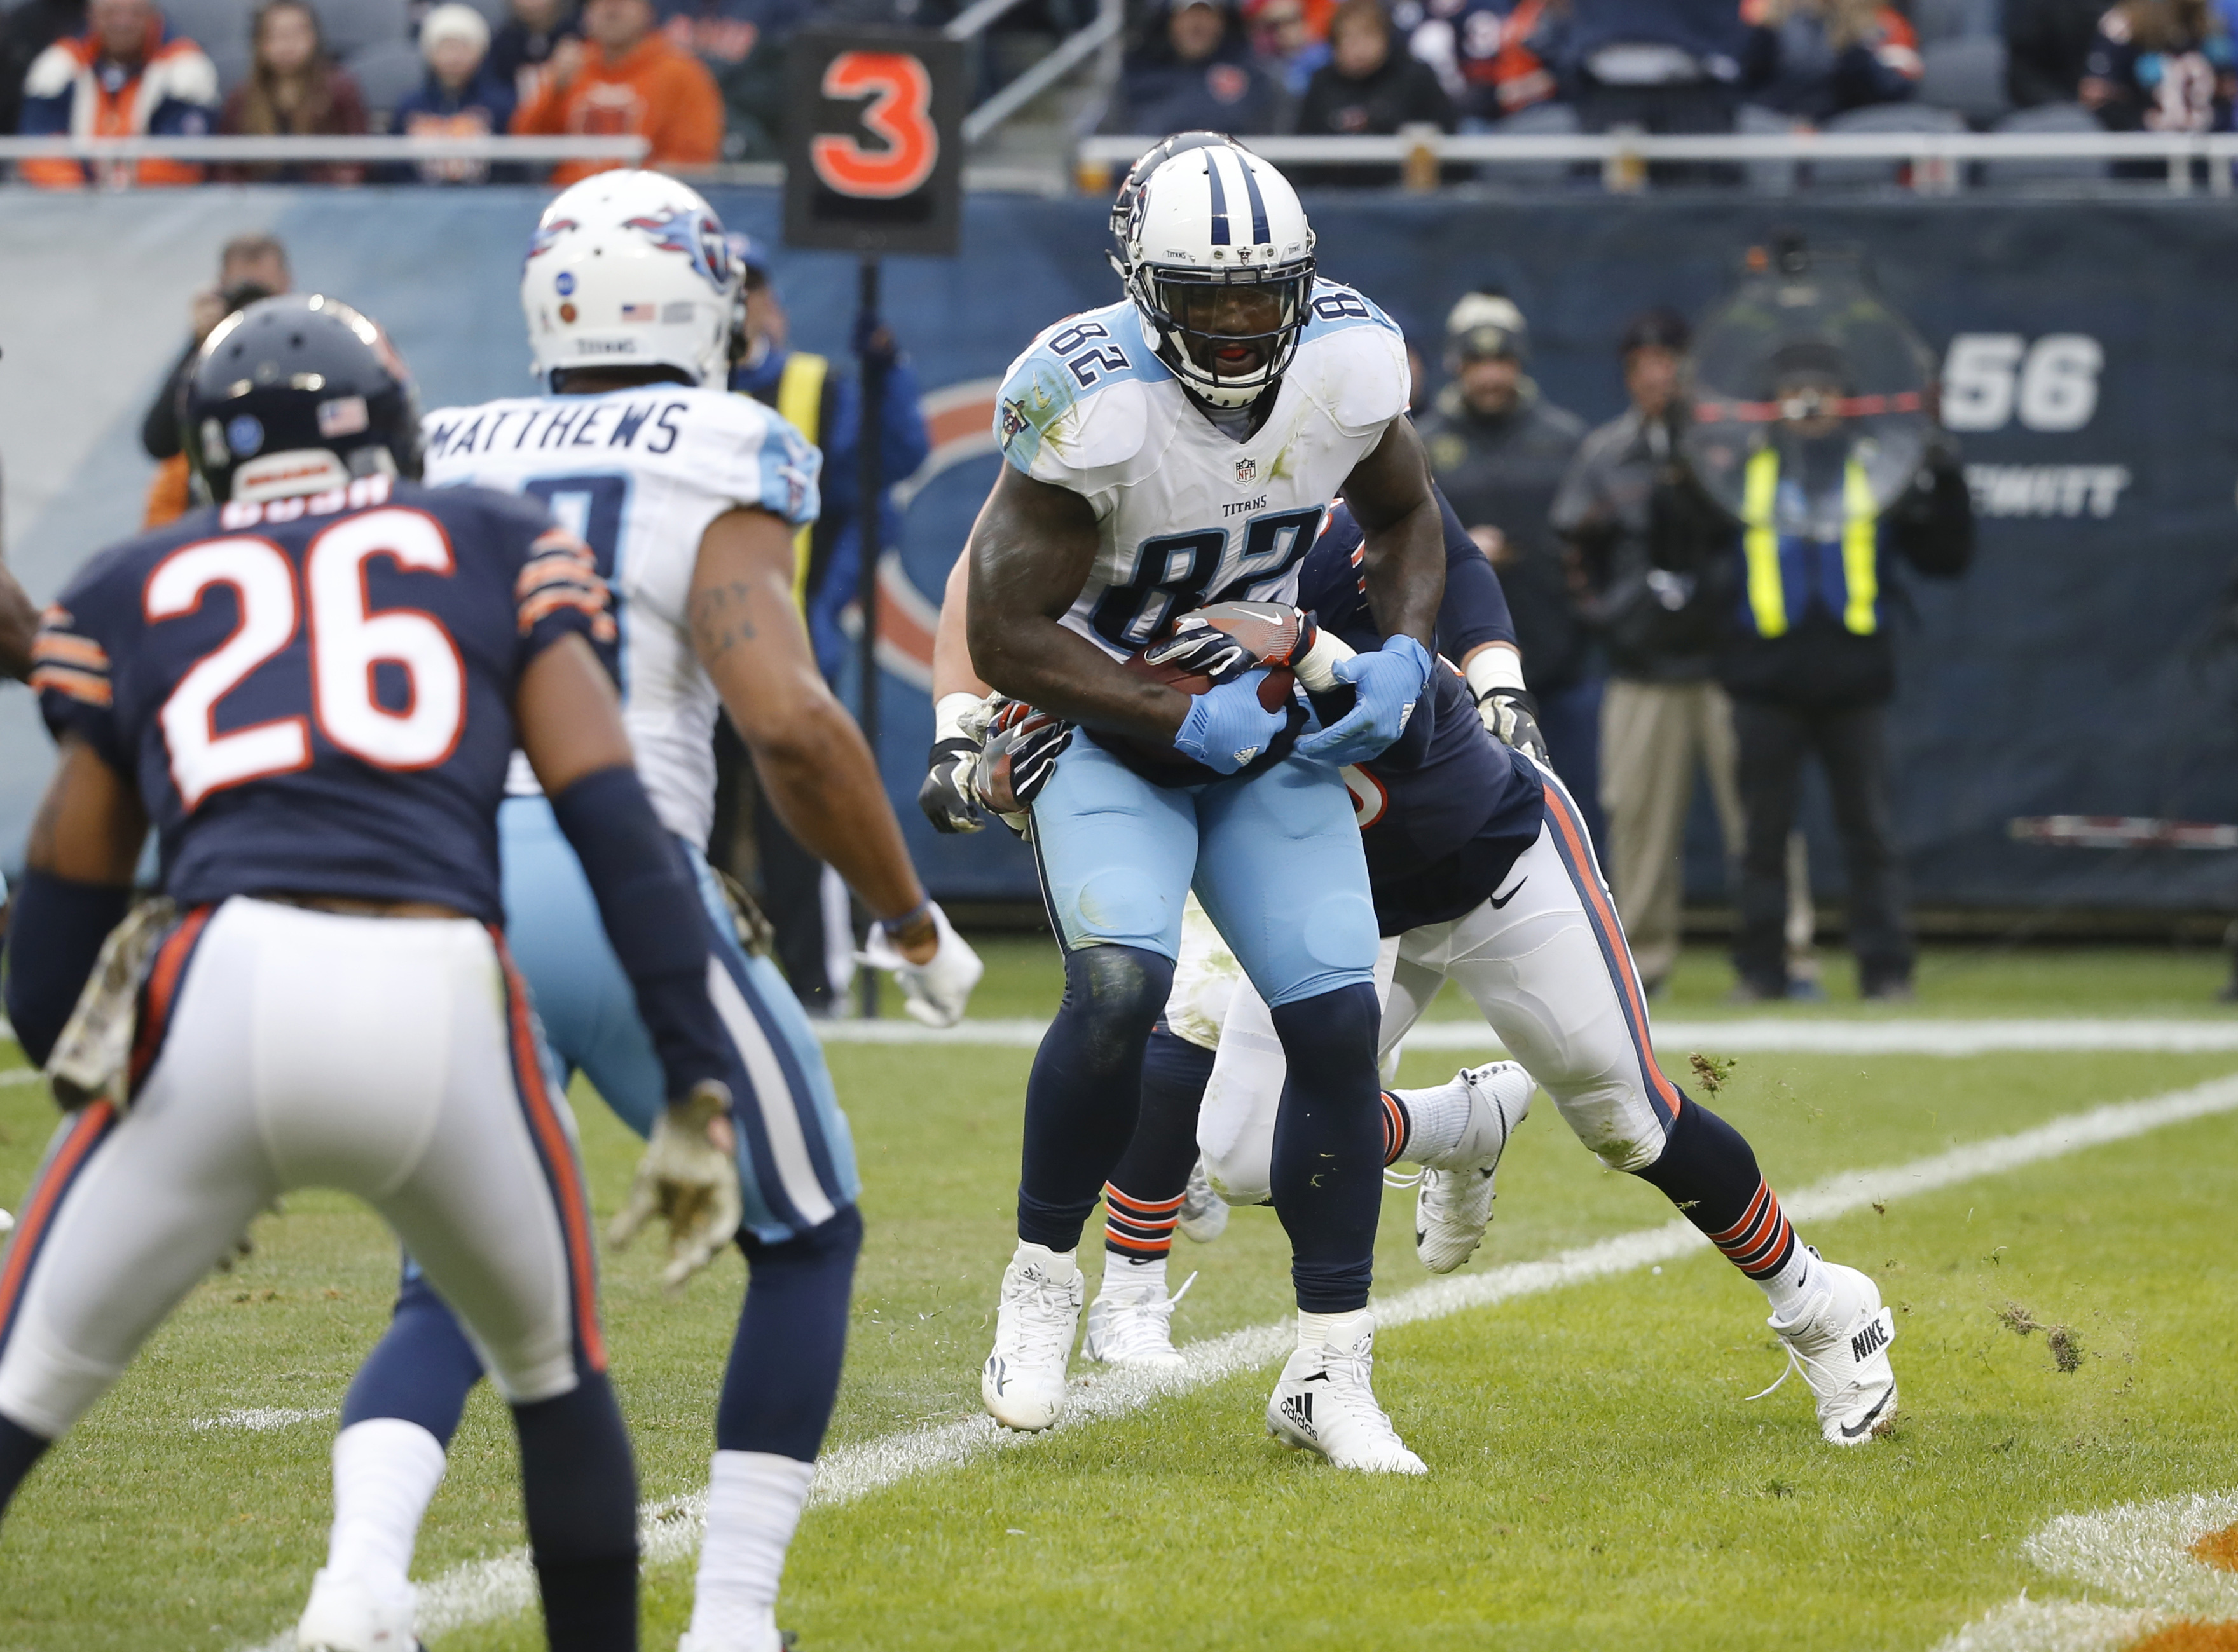 Tennessee Titans tight end Delanie Walker (82) runs to the end zone for touchdown against Chicago Bears inside linebacker Danny Trevathan (59) during the first half of an NFL football game, Sunday, Nov. 27, 2016, in Chicago. (AP Photo/Charles Rex Arbogast